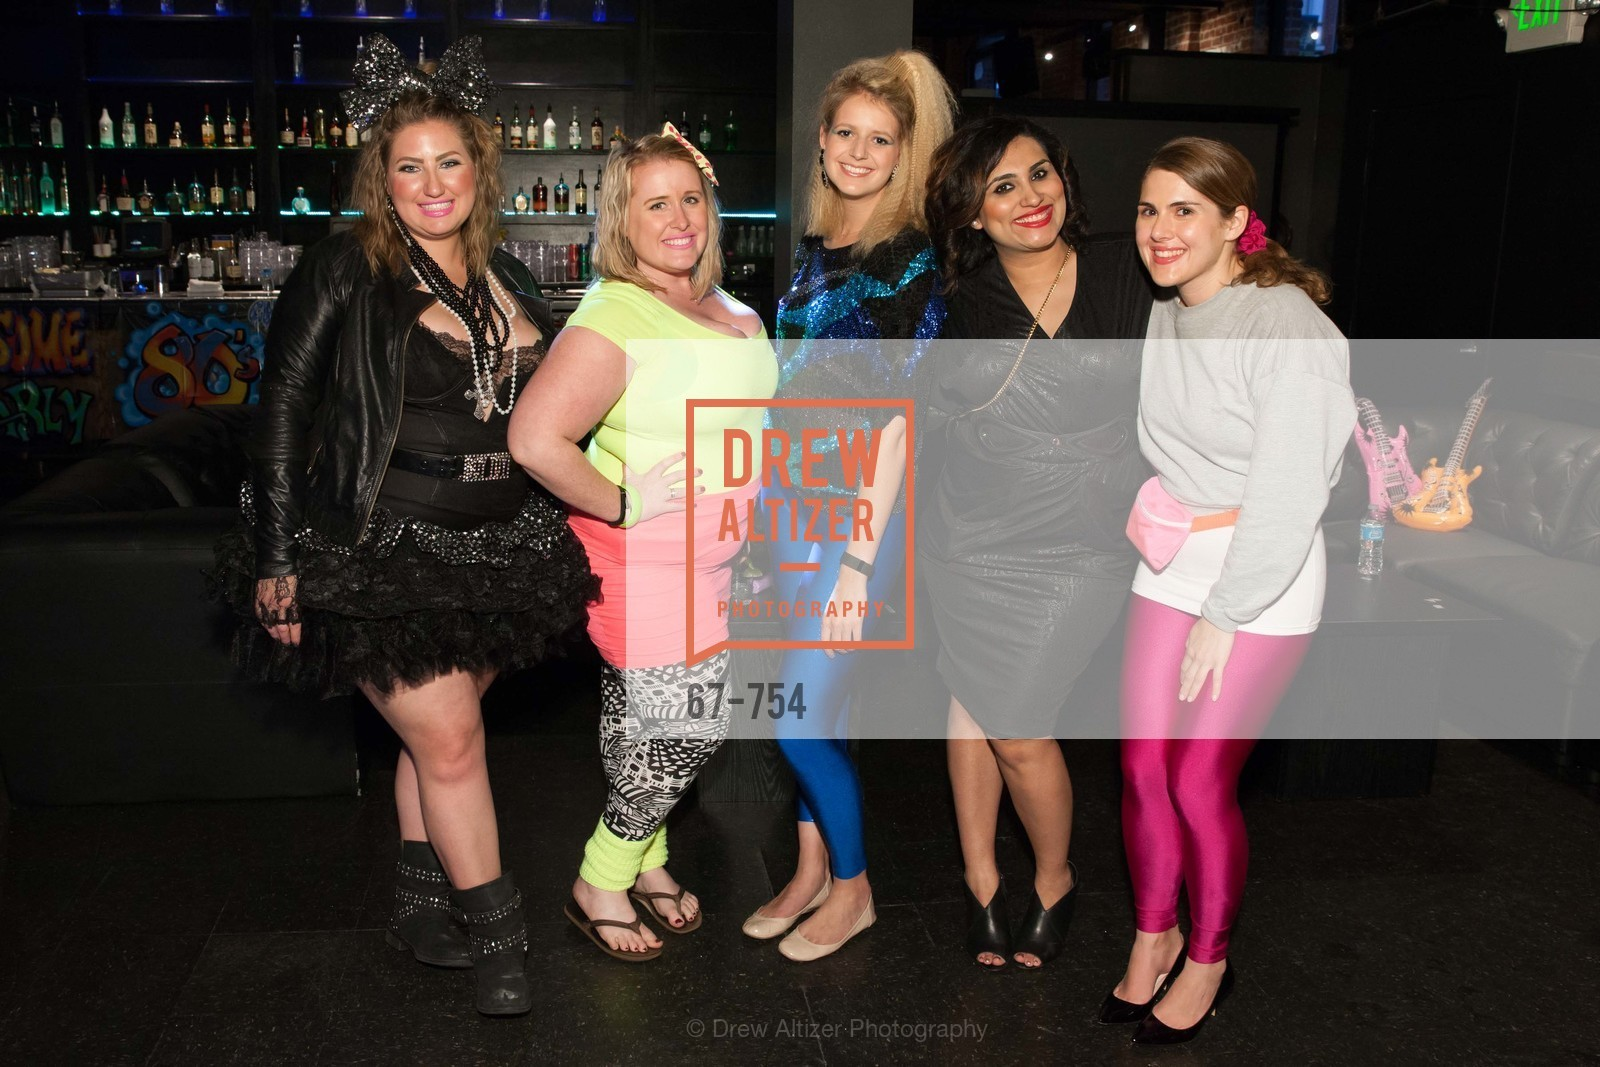 Annie Benisch, Eryn Golden, Laura Moir, Teesta Kaur, Cailin Todd, SPINSTERS OF SAN FRANCISCO Party Like It's 1985 Charity Party, US, May 29th, 2015,Drew Altizer, Drew Altizer Photography, full-service agency, private events, San Francisco photographer, photographer california